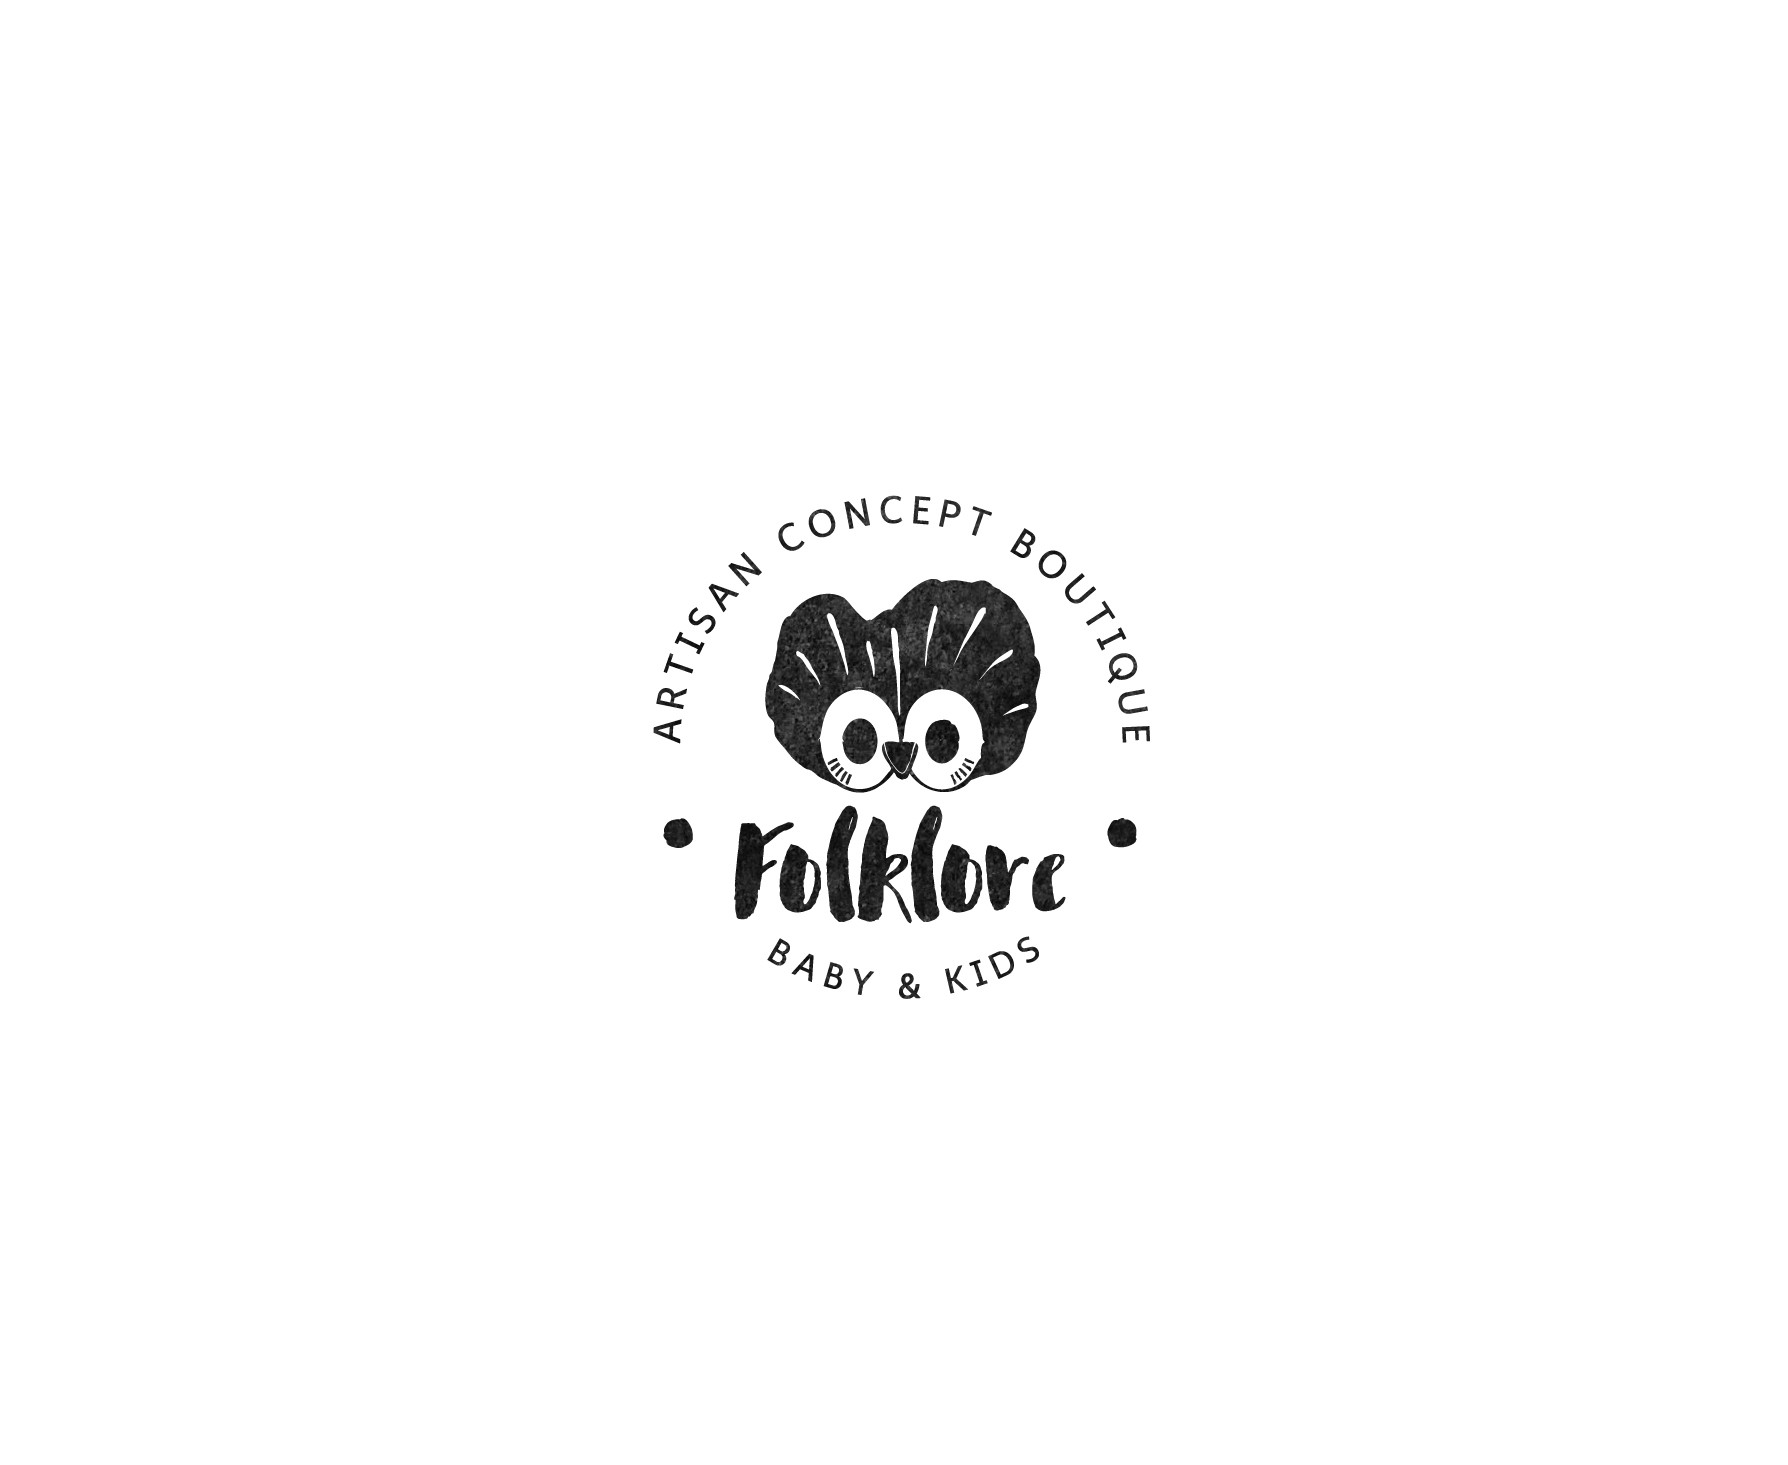 Be the creator of a unique vintage logo for a baby & kids artisan concept boutique!